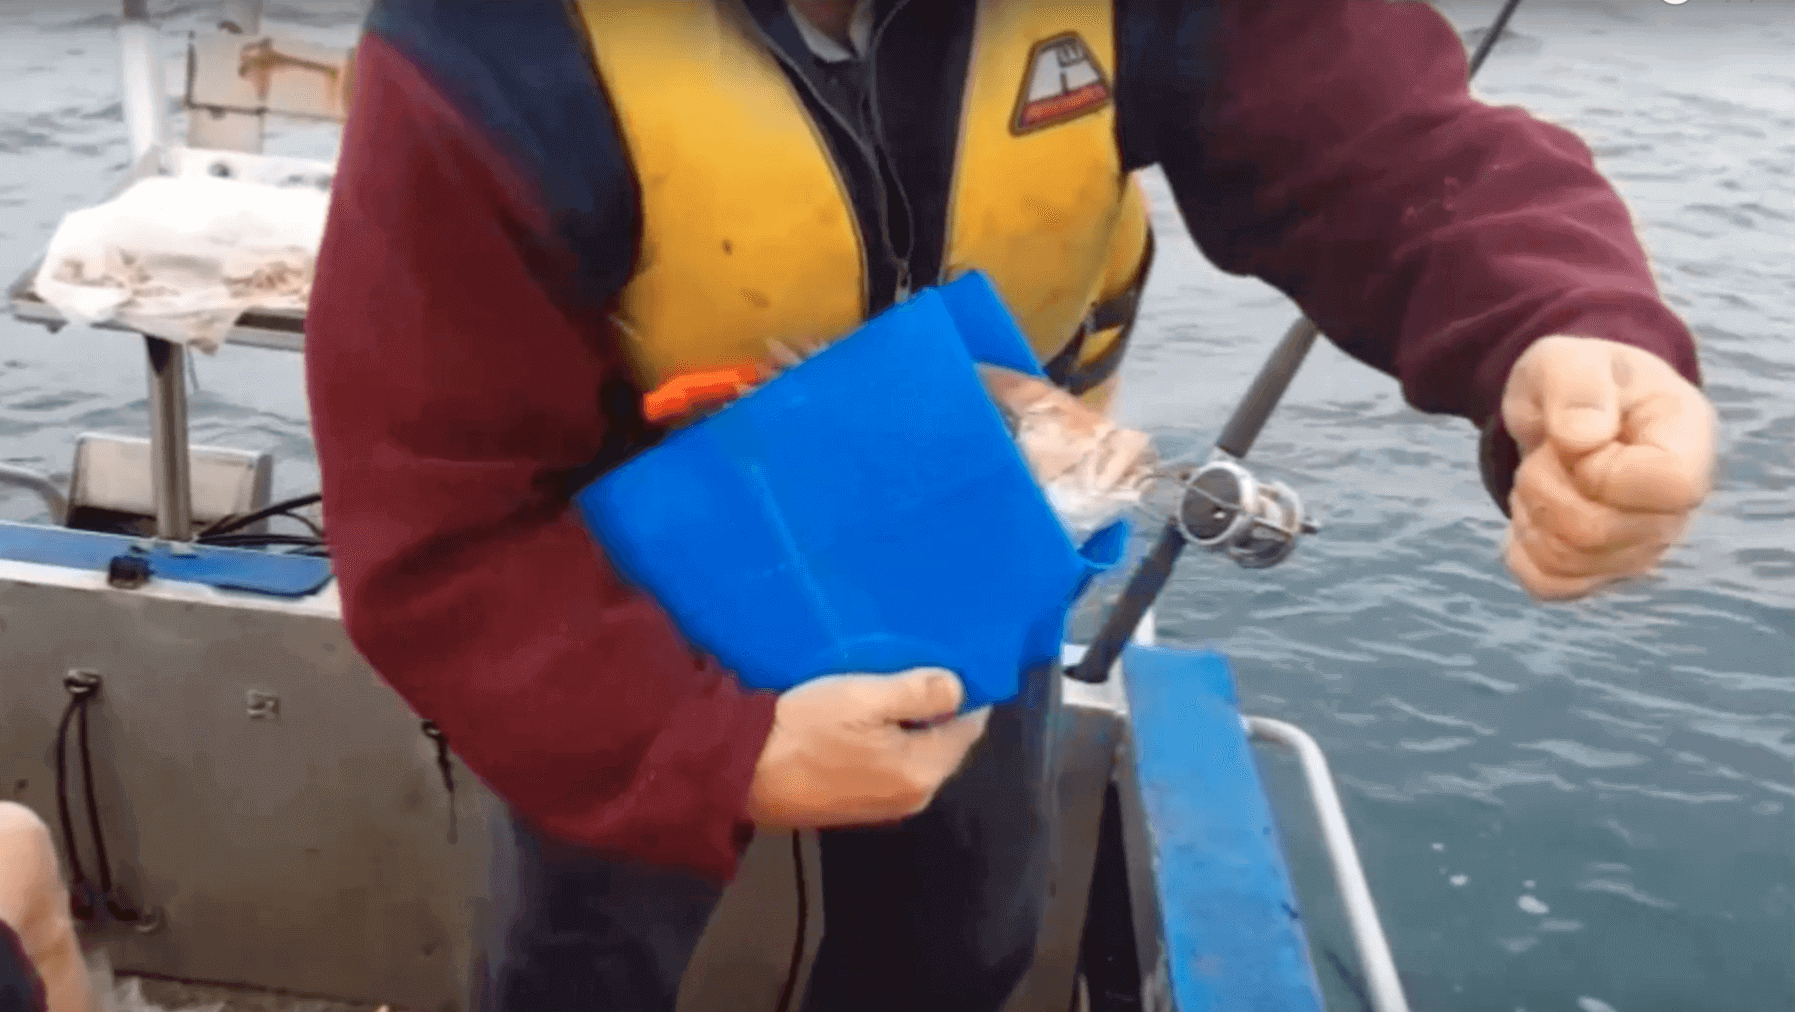 KeepaFish Scoop Can Save the Lives of Many Fish | All3DP